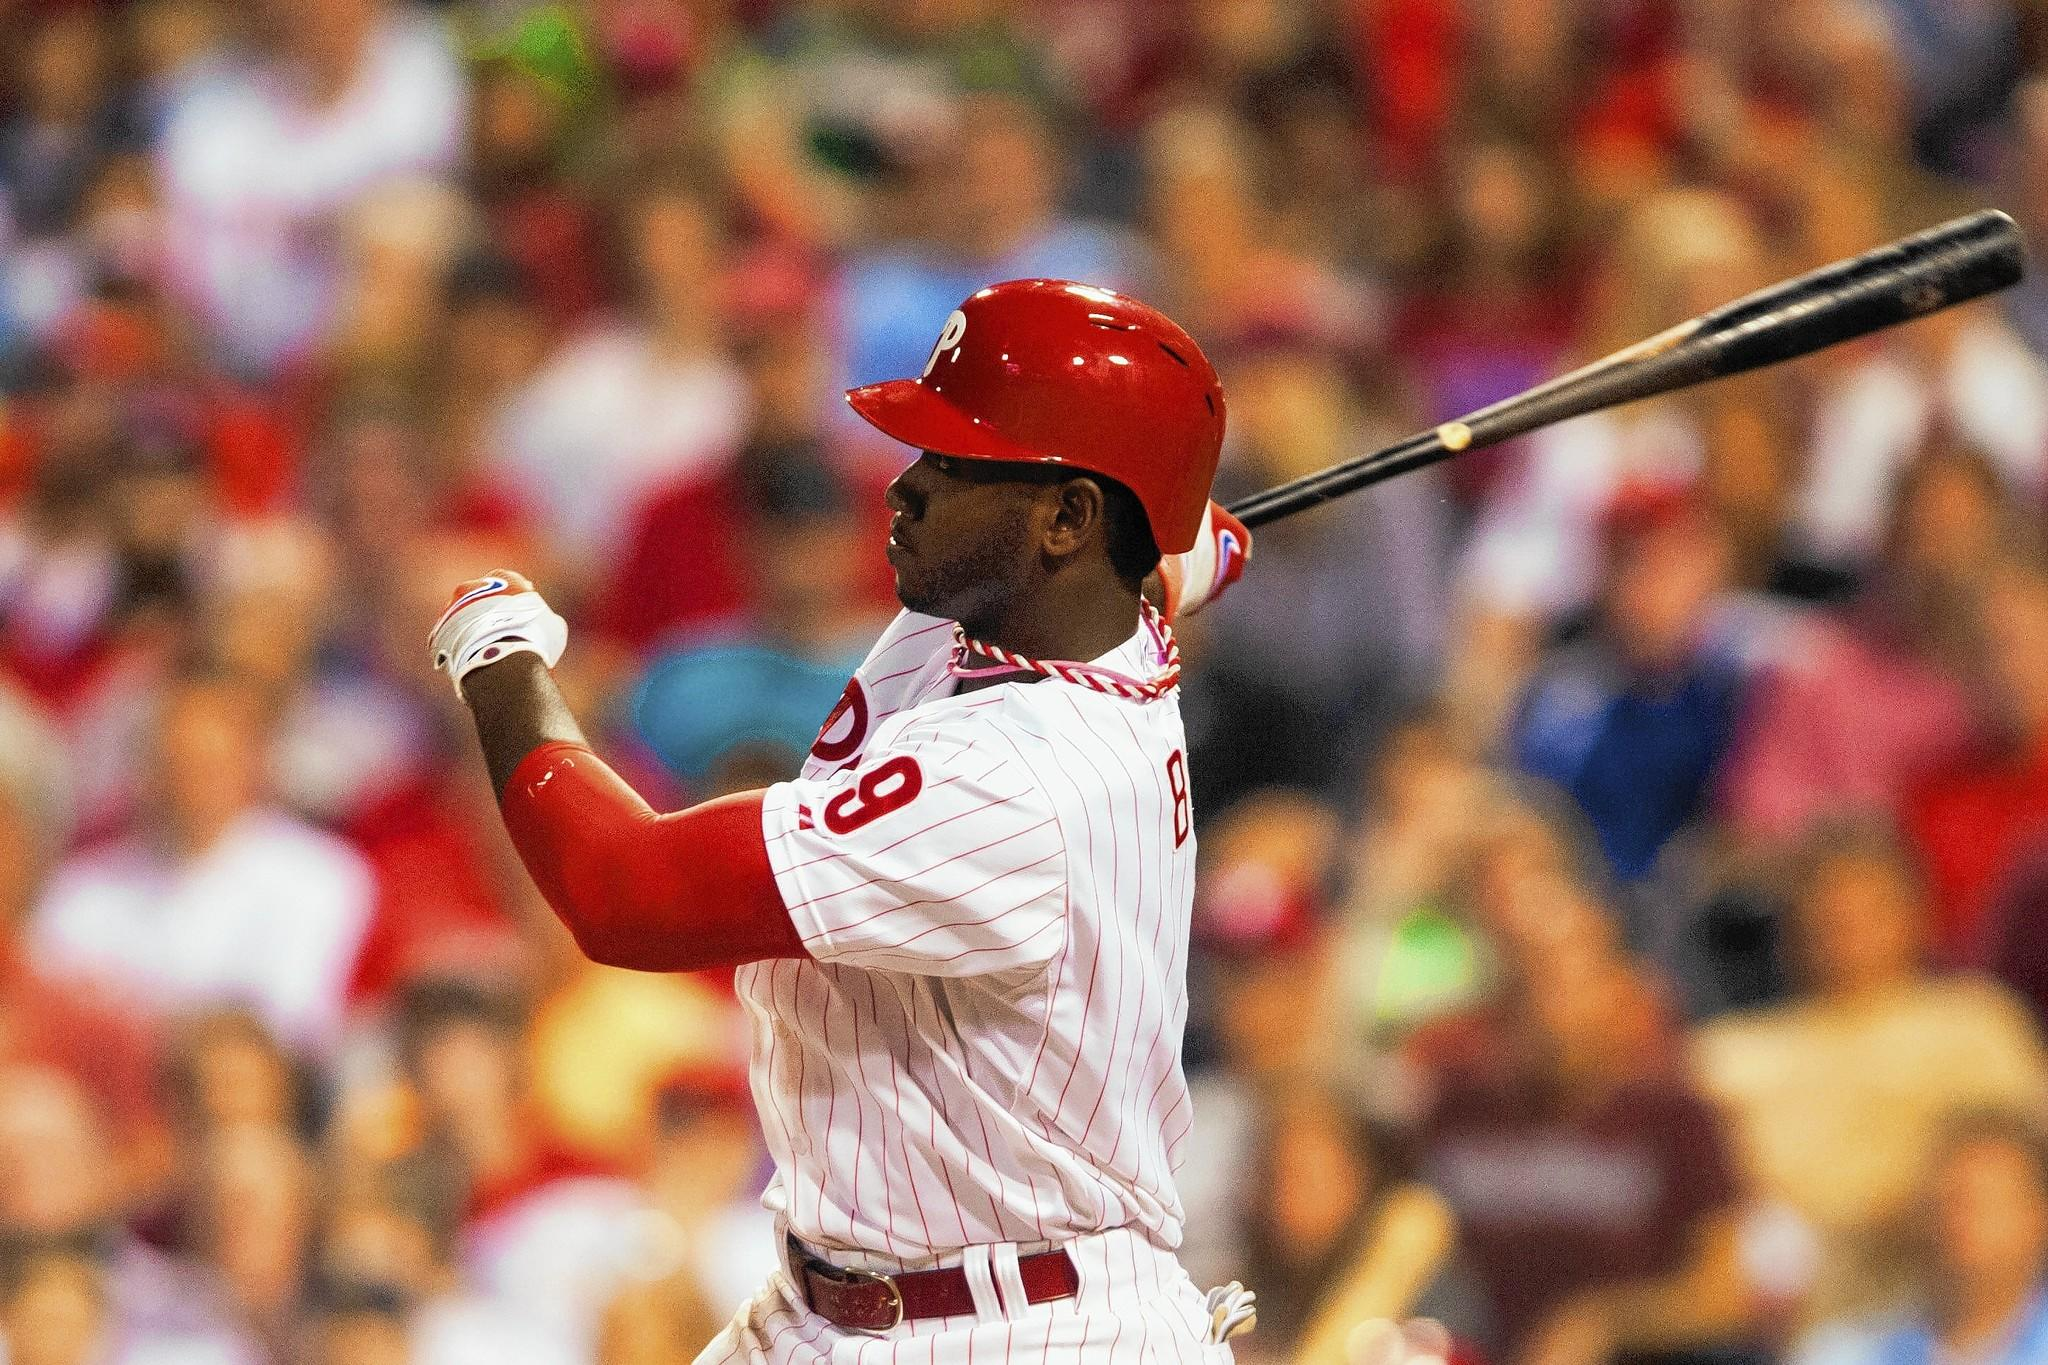 Philadelphia Phillies left fielder Domonic Brown hits a home run during a game last season.